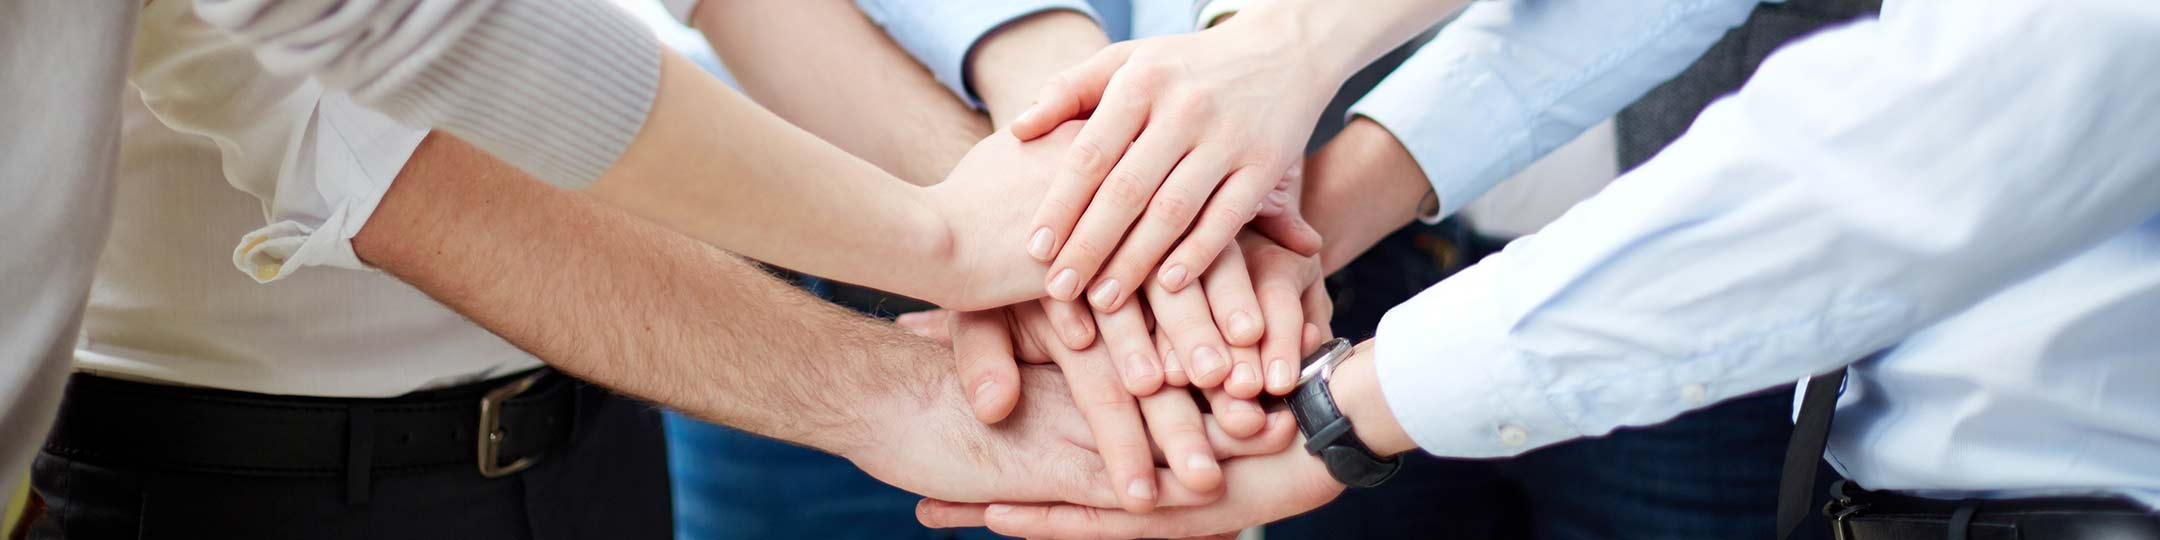 Hands clasped together in the centre of a group of people.